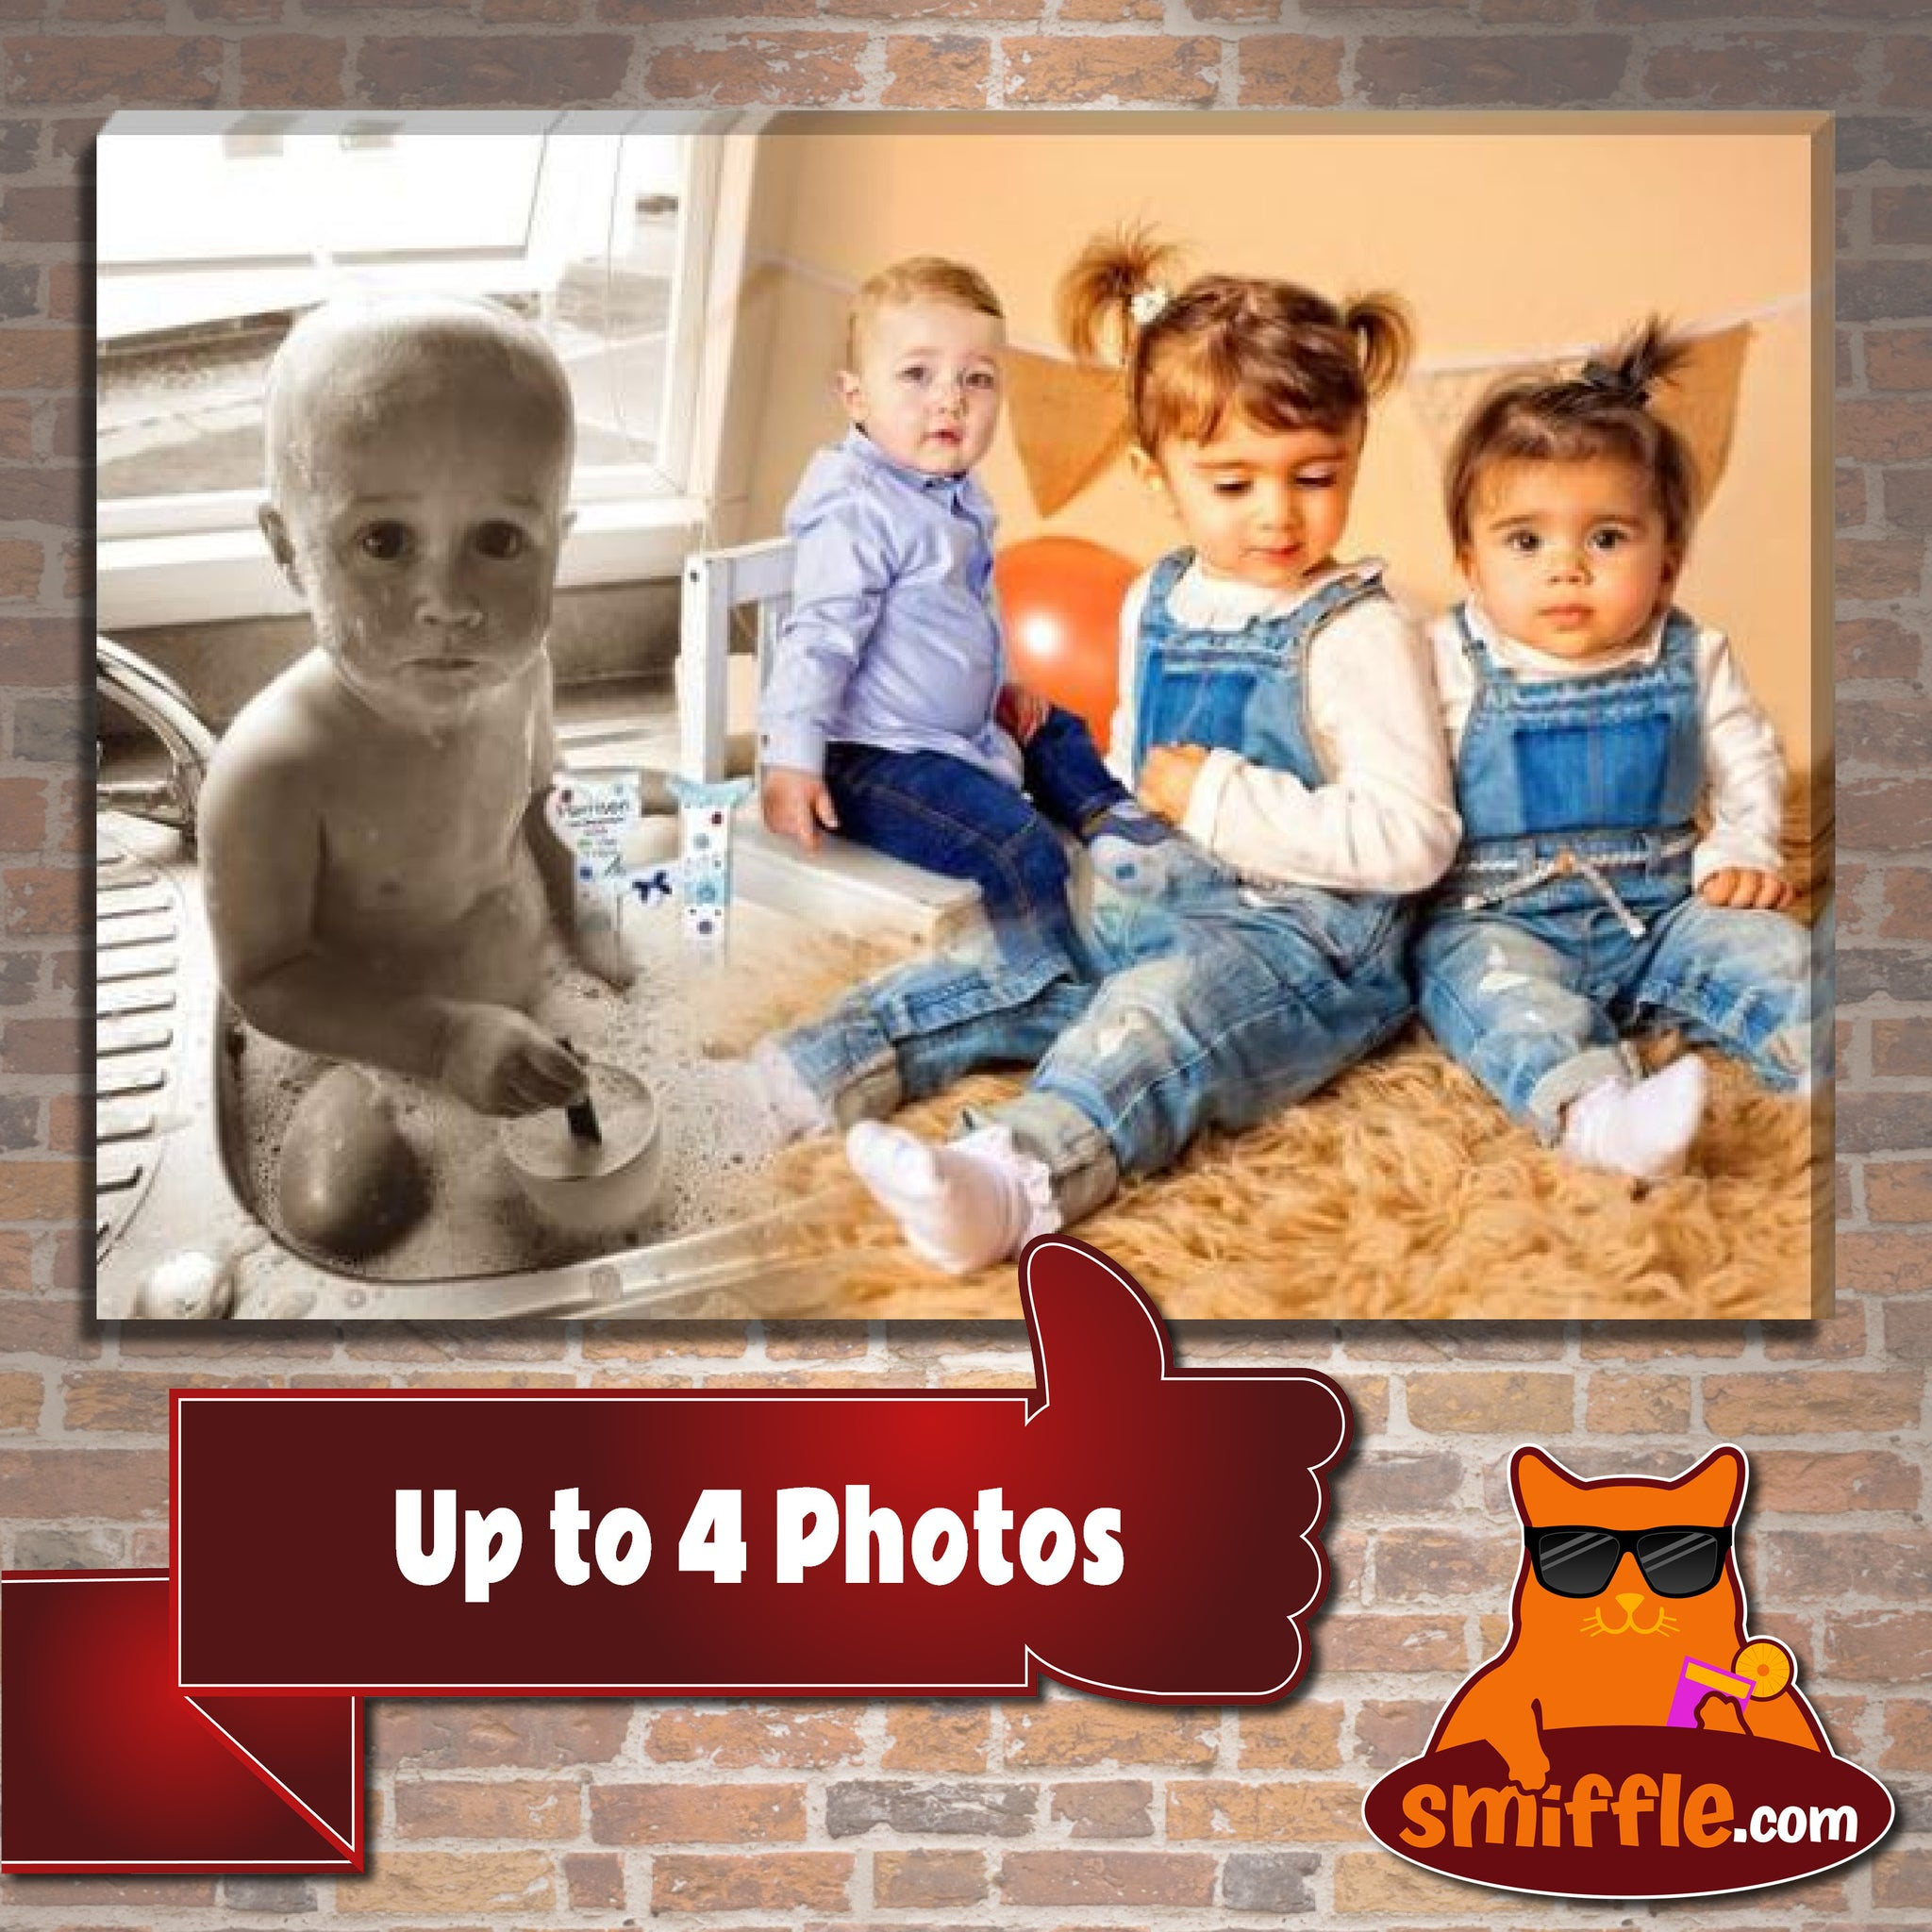 Up to 4 Photos - PURR9994